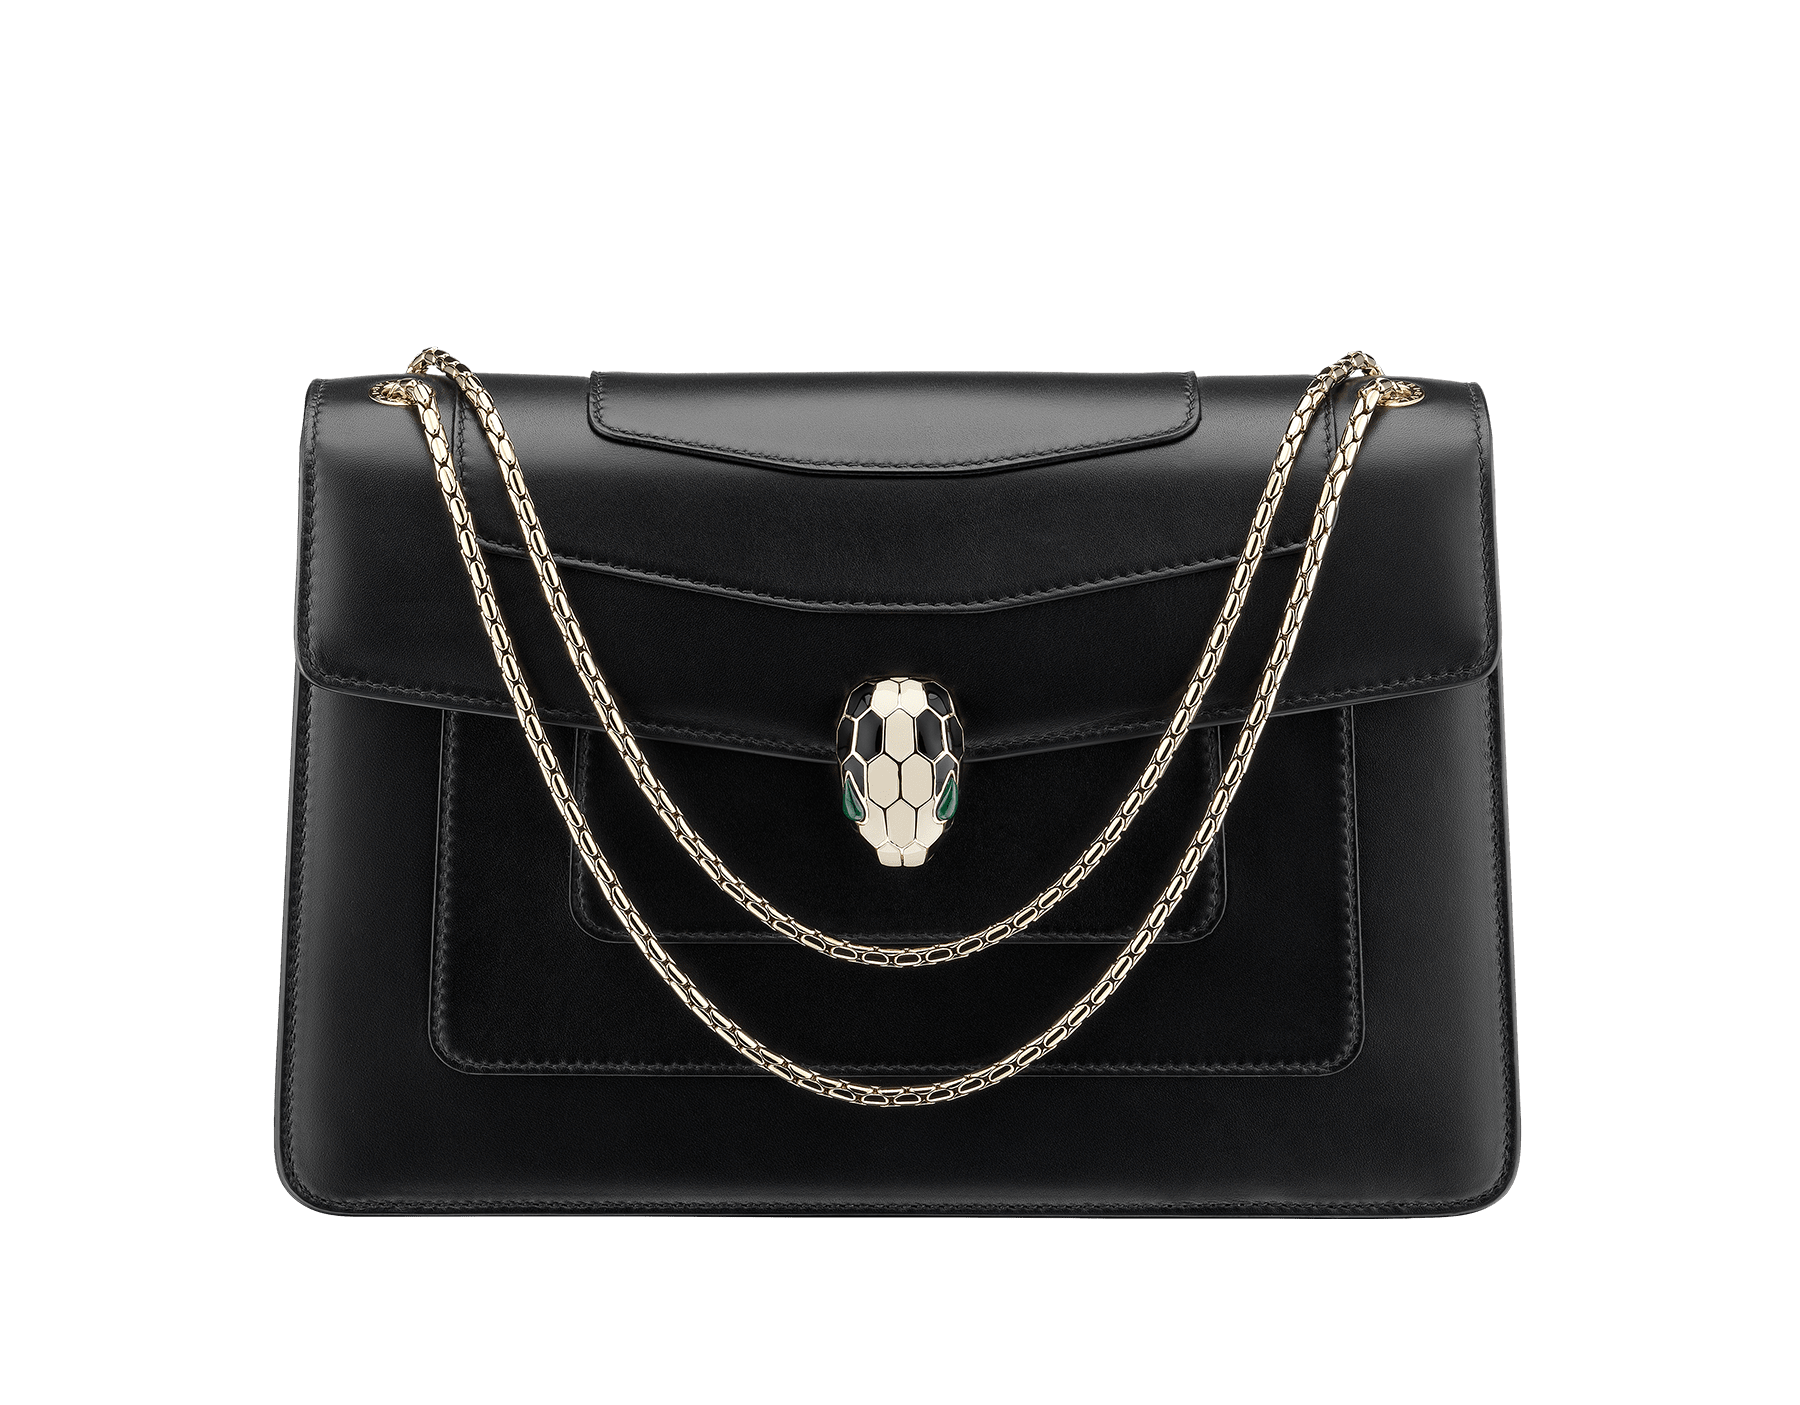 Black calf leather shoulder bag with brass light gold plated black and white enamel Serpenti head closure with malachite eyes. 521-CLa image 1